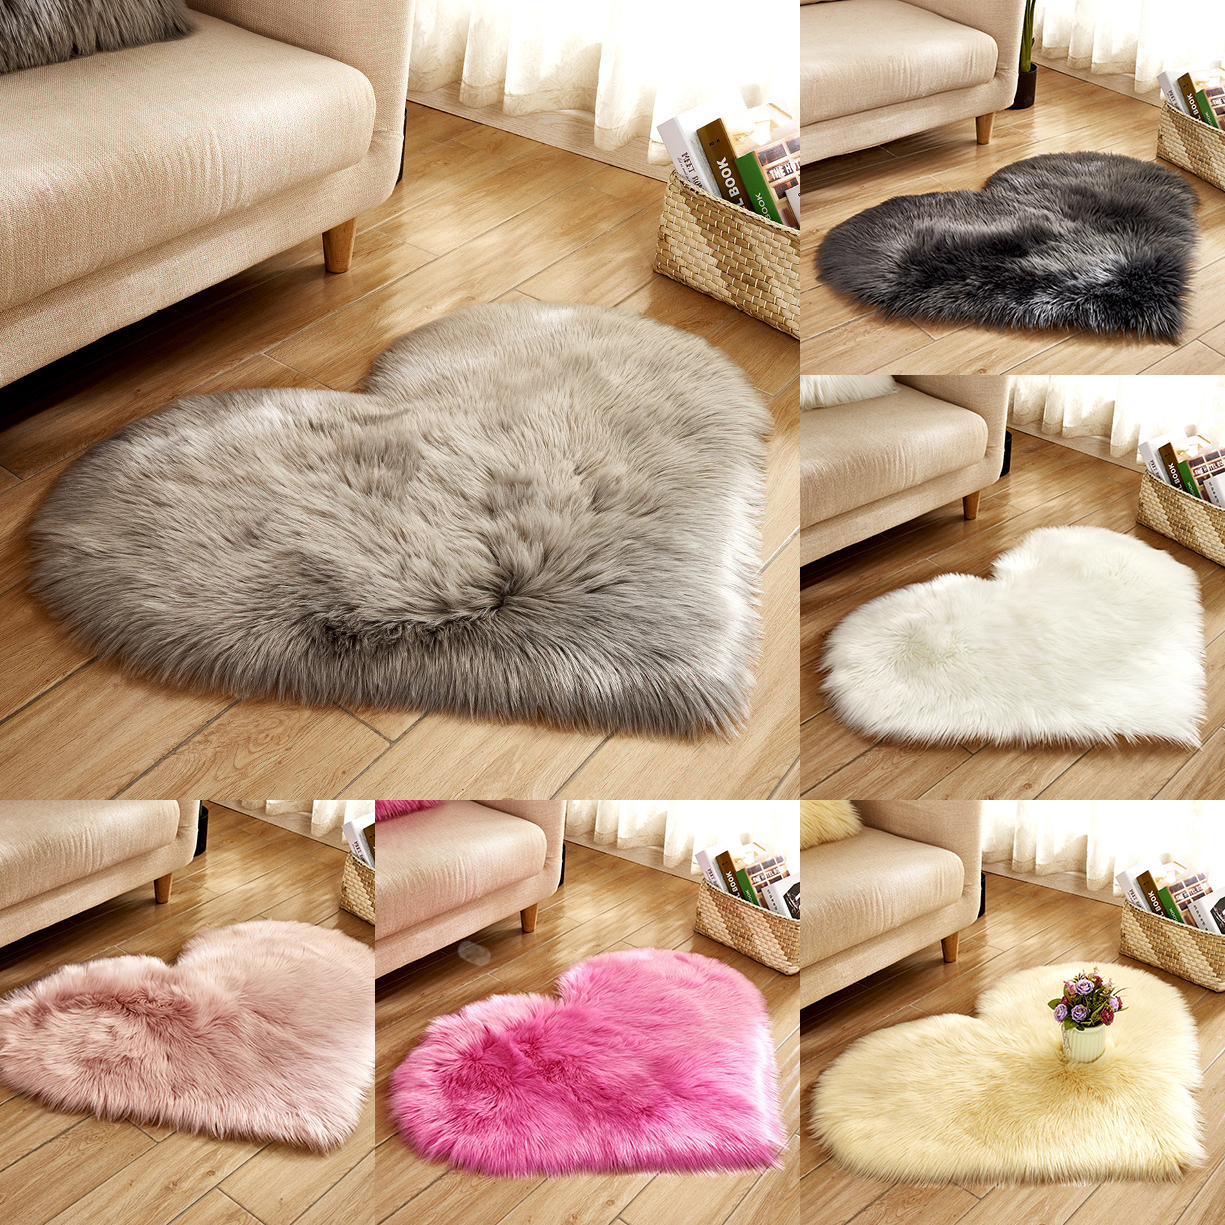 OHEART Love Heart Carpet For Living Room Faux Fur Sheepskin Hairy Rugs Non-slip Mat Artificial Wool Fluffy Soft Washable